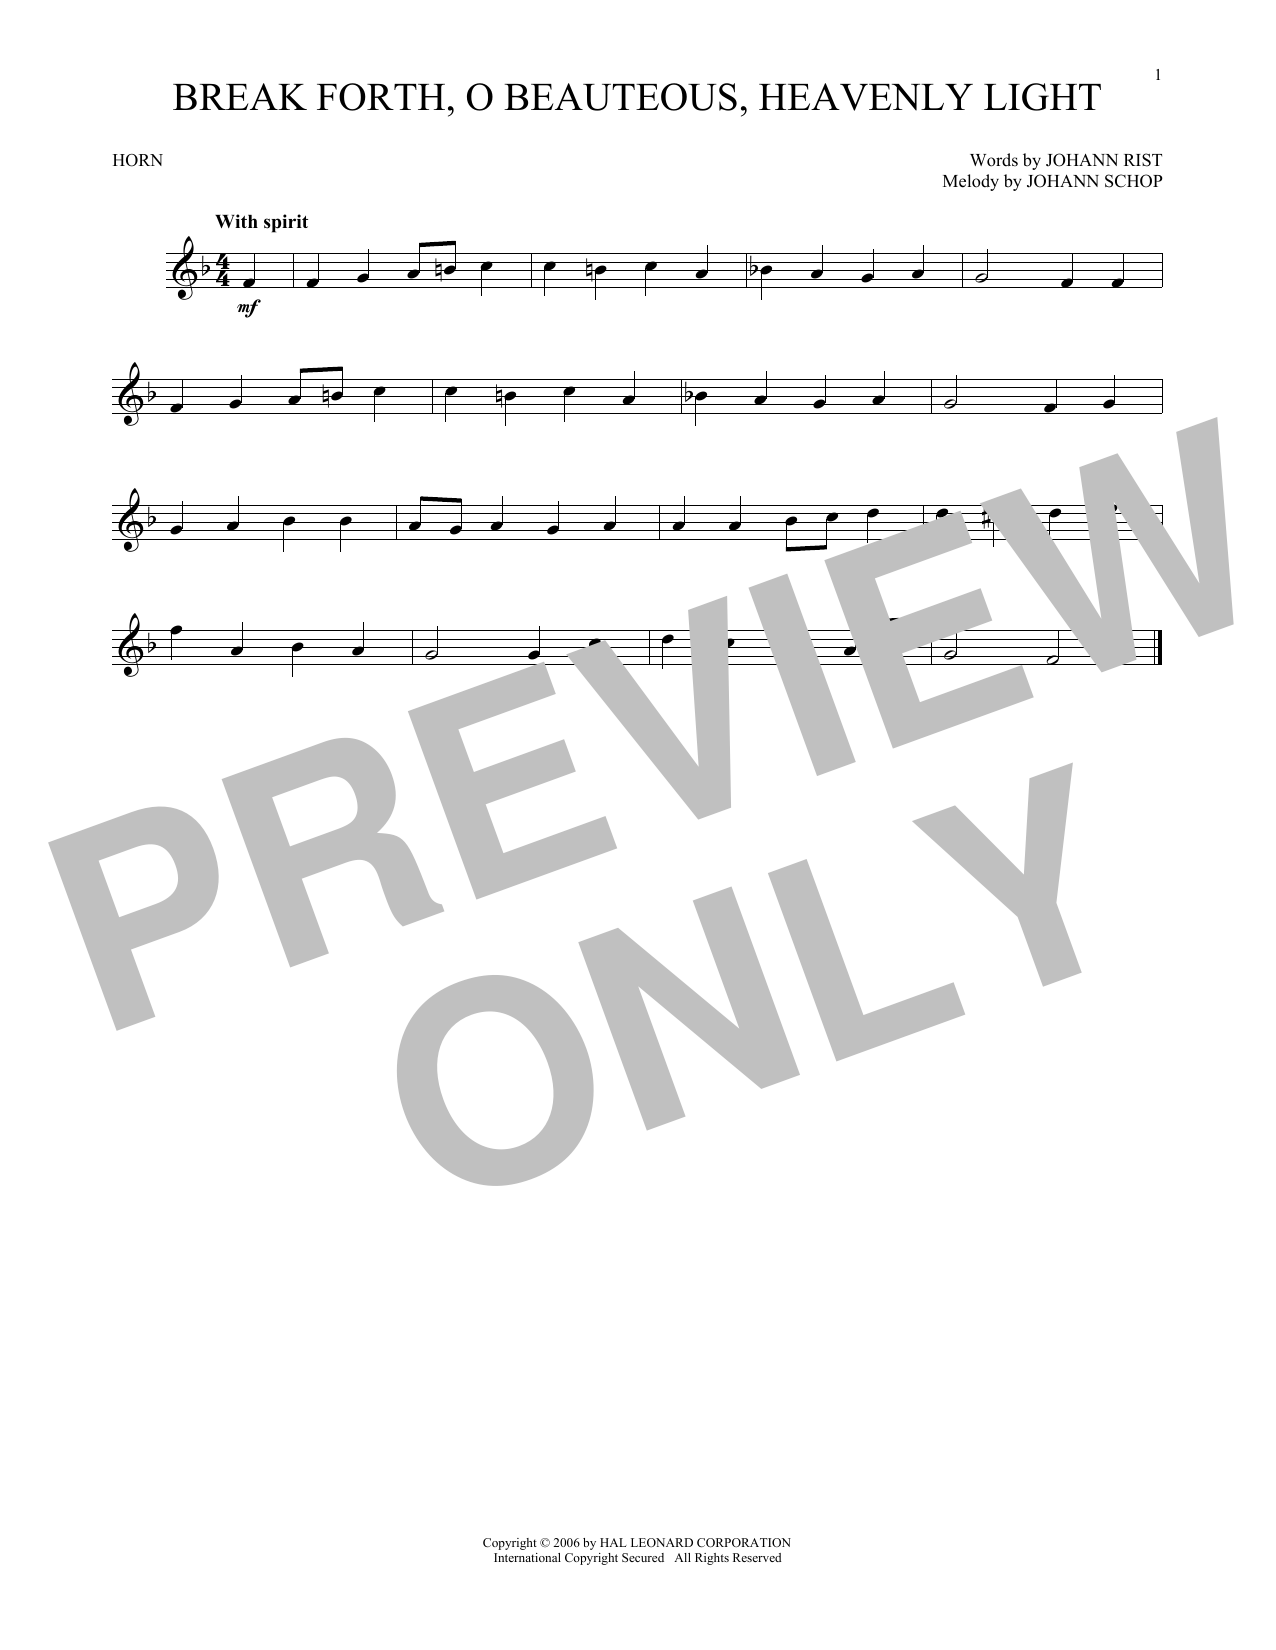 Break Forth, O Beauteous, Heavenly Light (French Horn Solo)